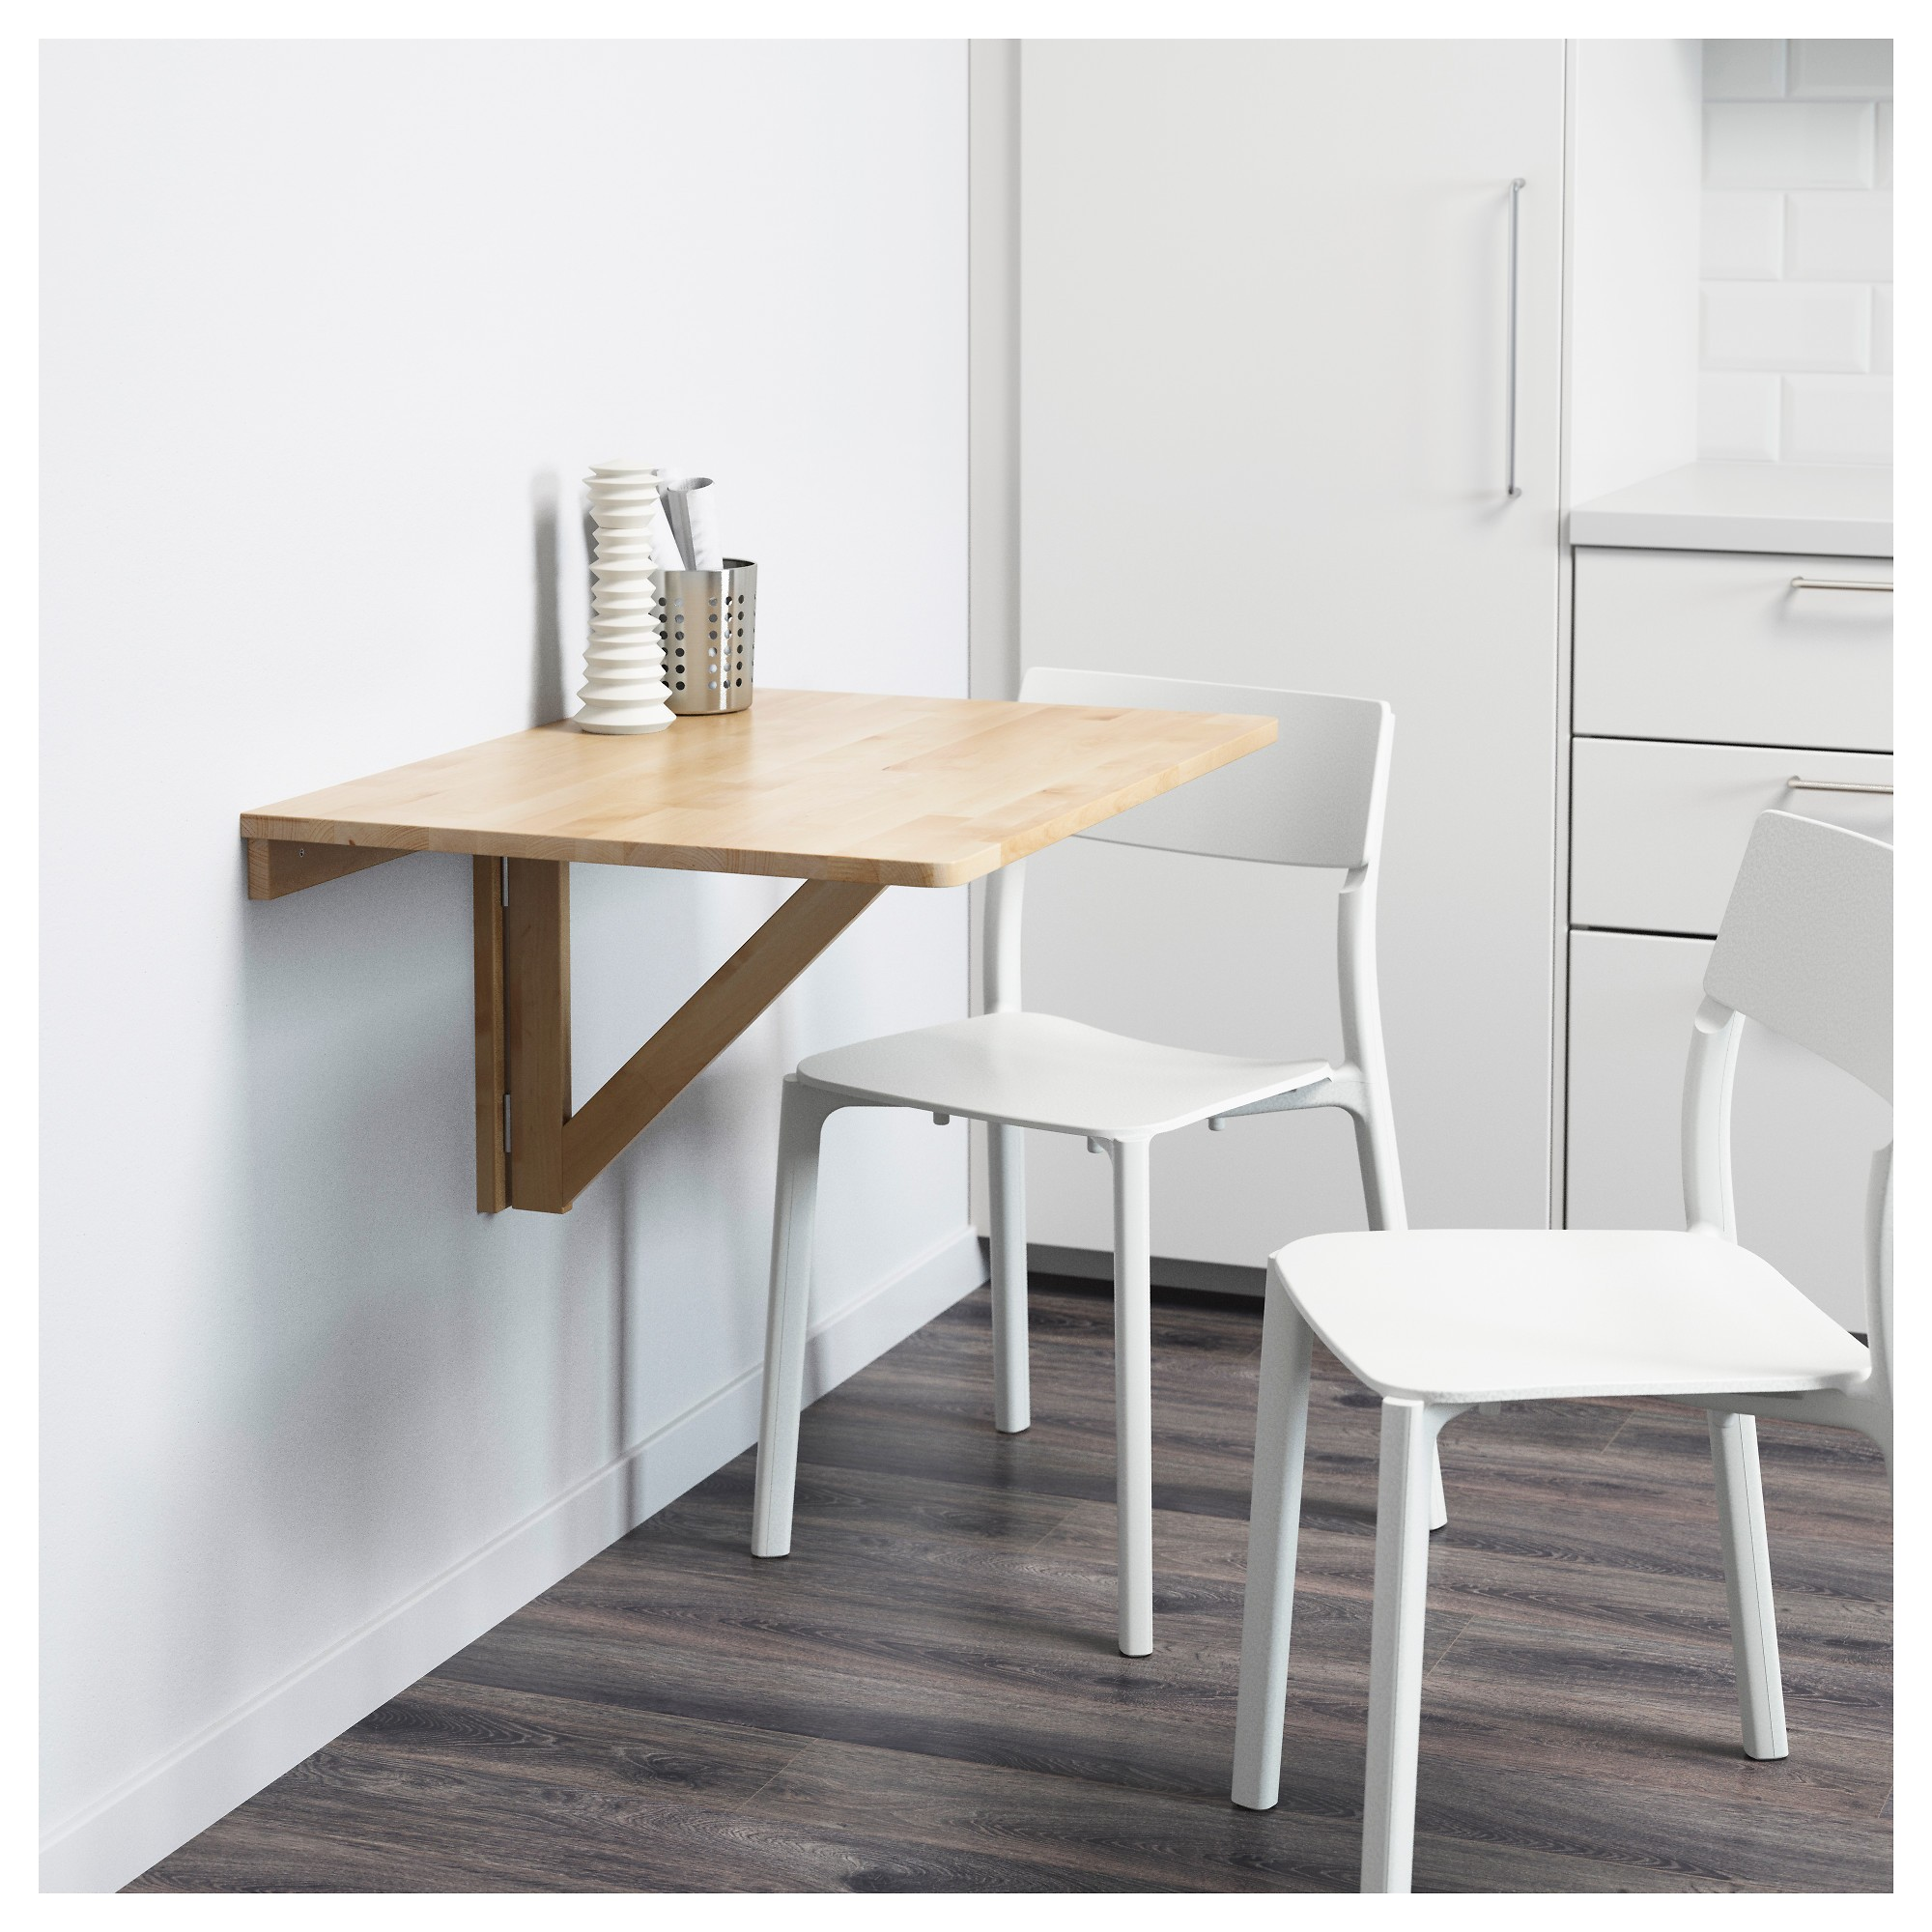 Table murale pliante cuisine maison design - Table de cuisine murale ...